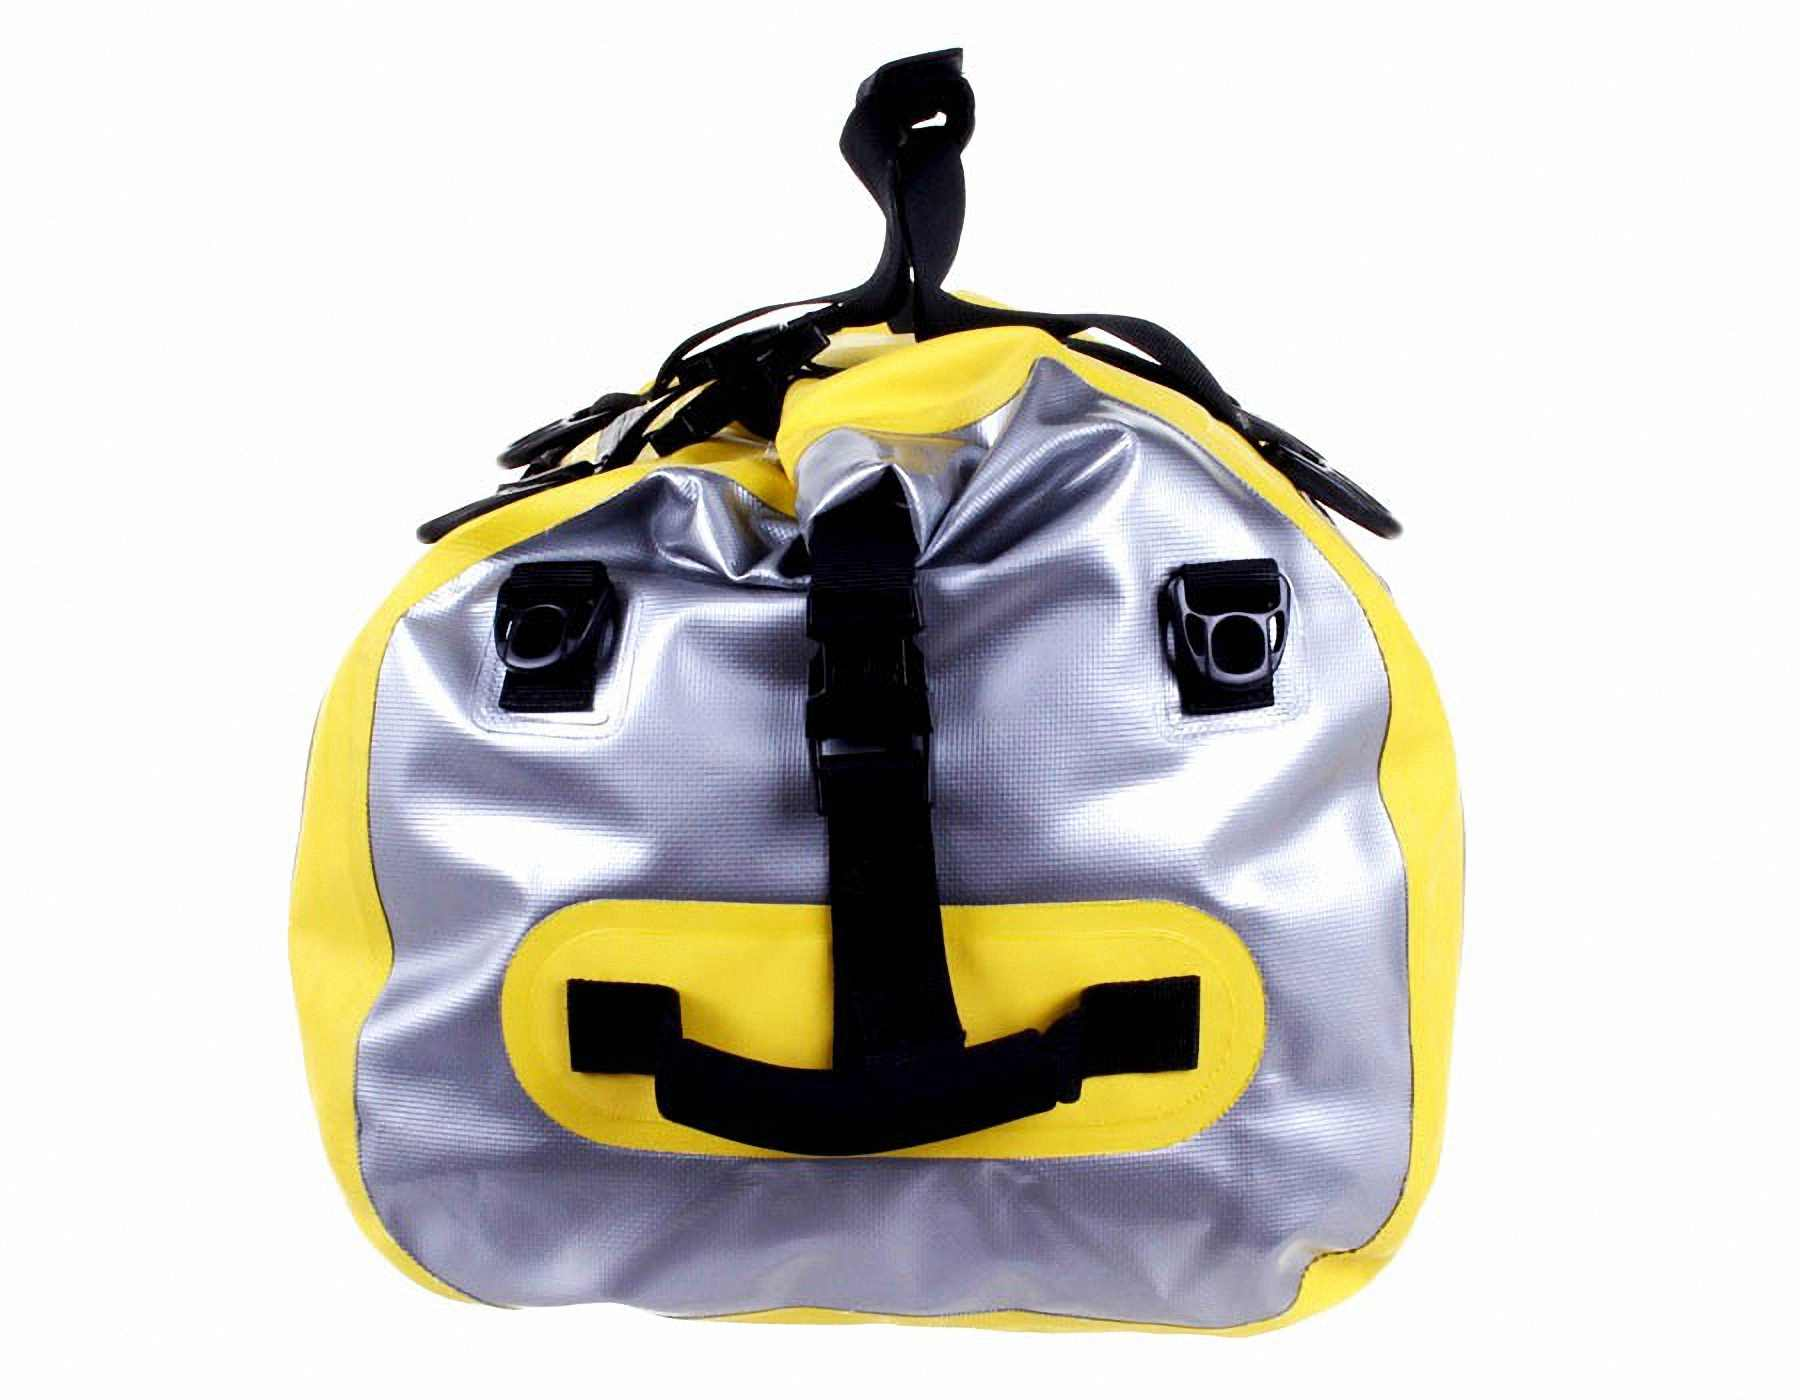 Водонепроницаемая сумка OverBoard OB1153Y - Pro-Sports Waterproof Duffel Bag - 40 литров.  Фото 7